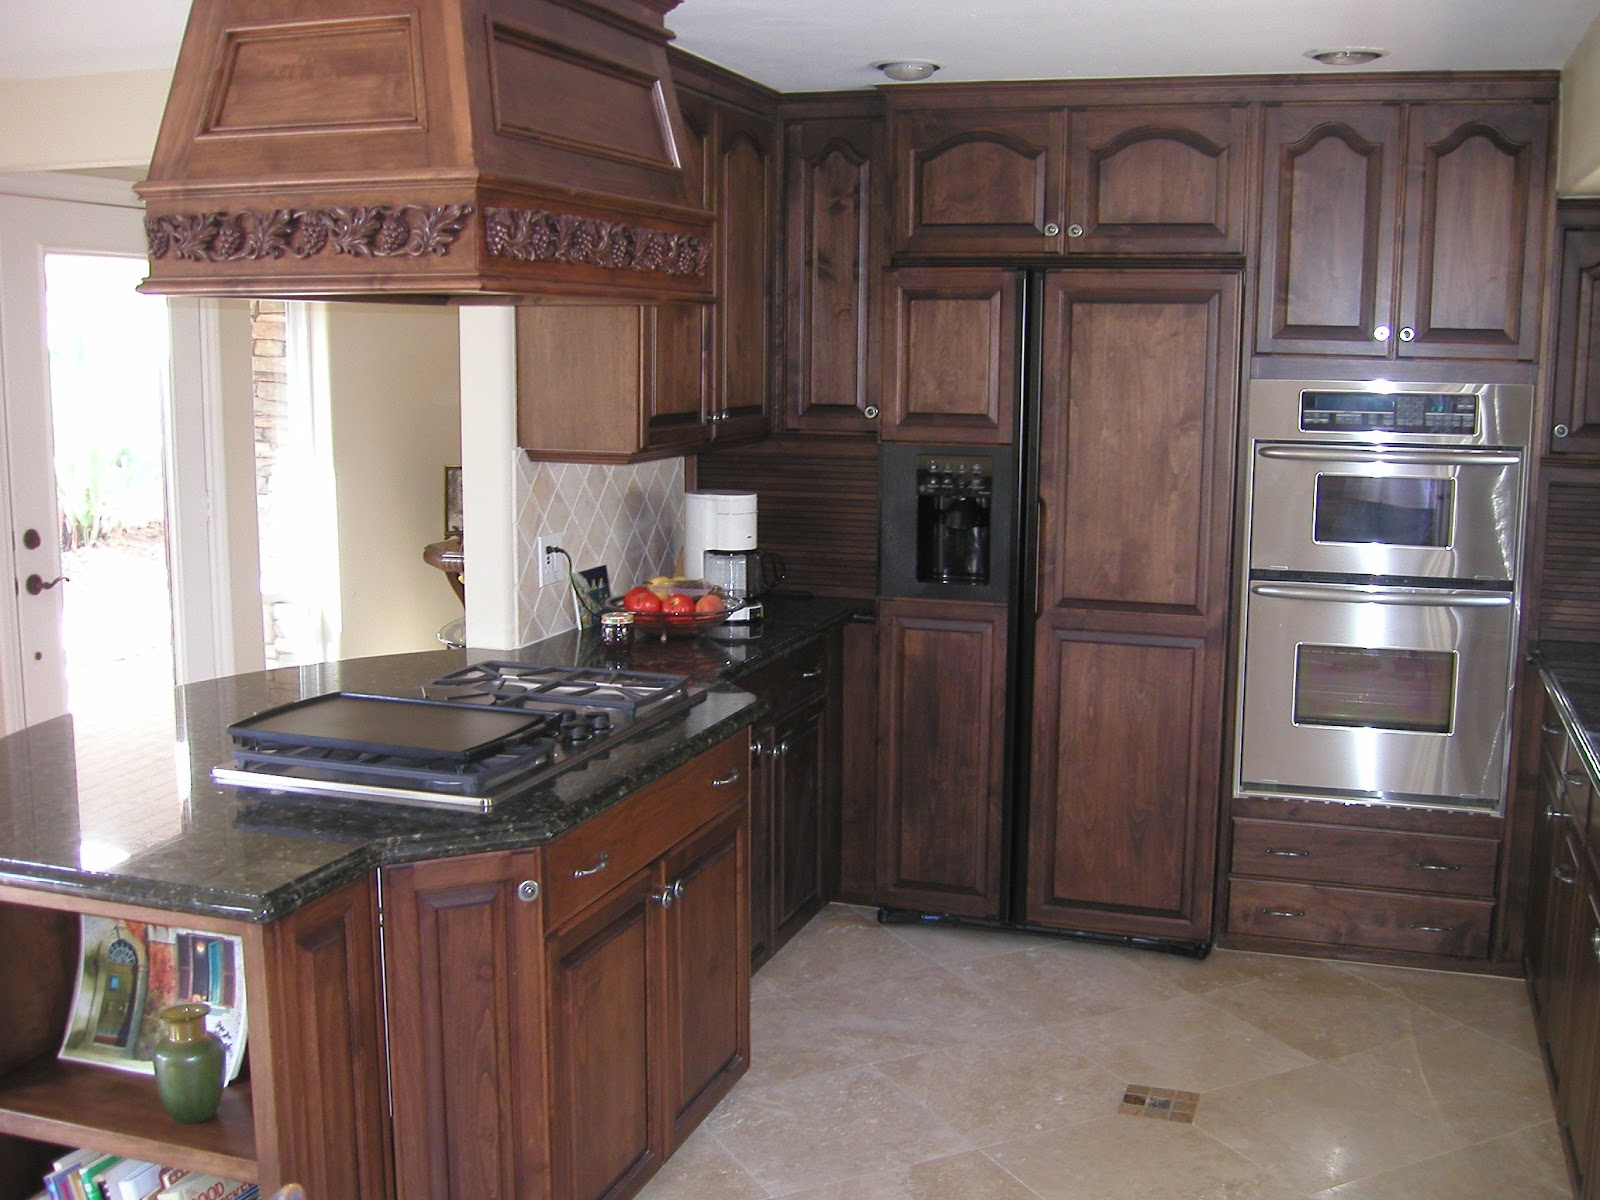 Home design ideas oak kitchen cabinets design ideas for Kitchen cupboard ideas